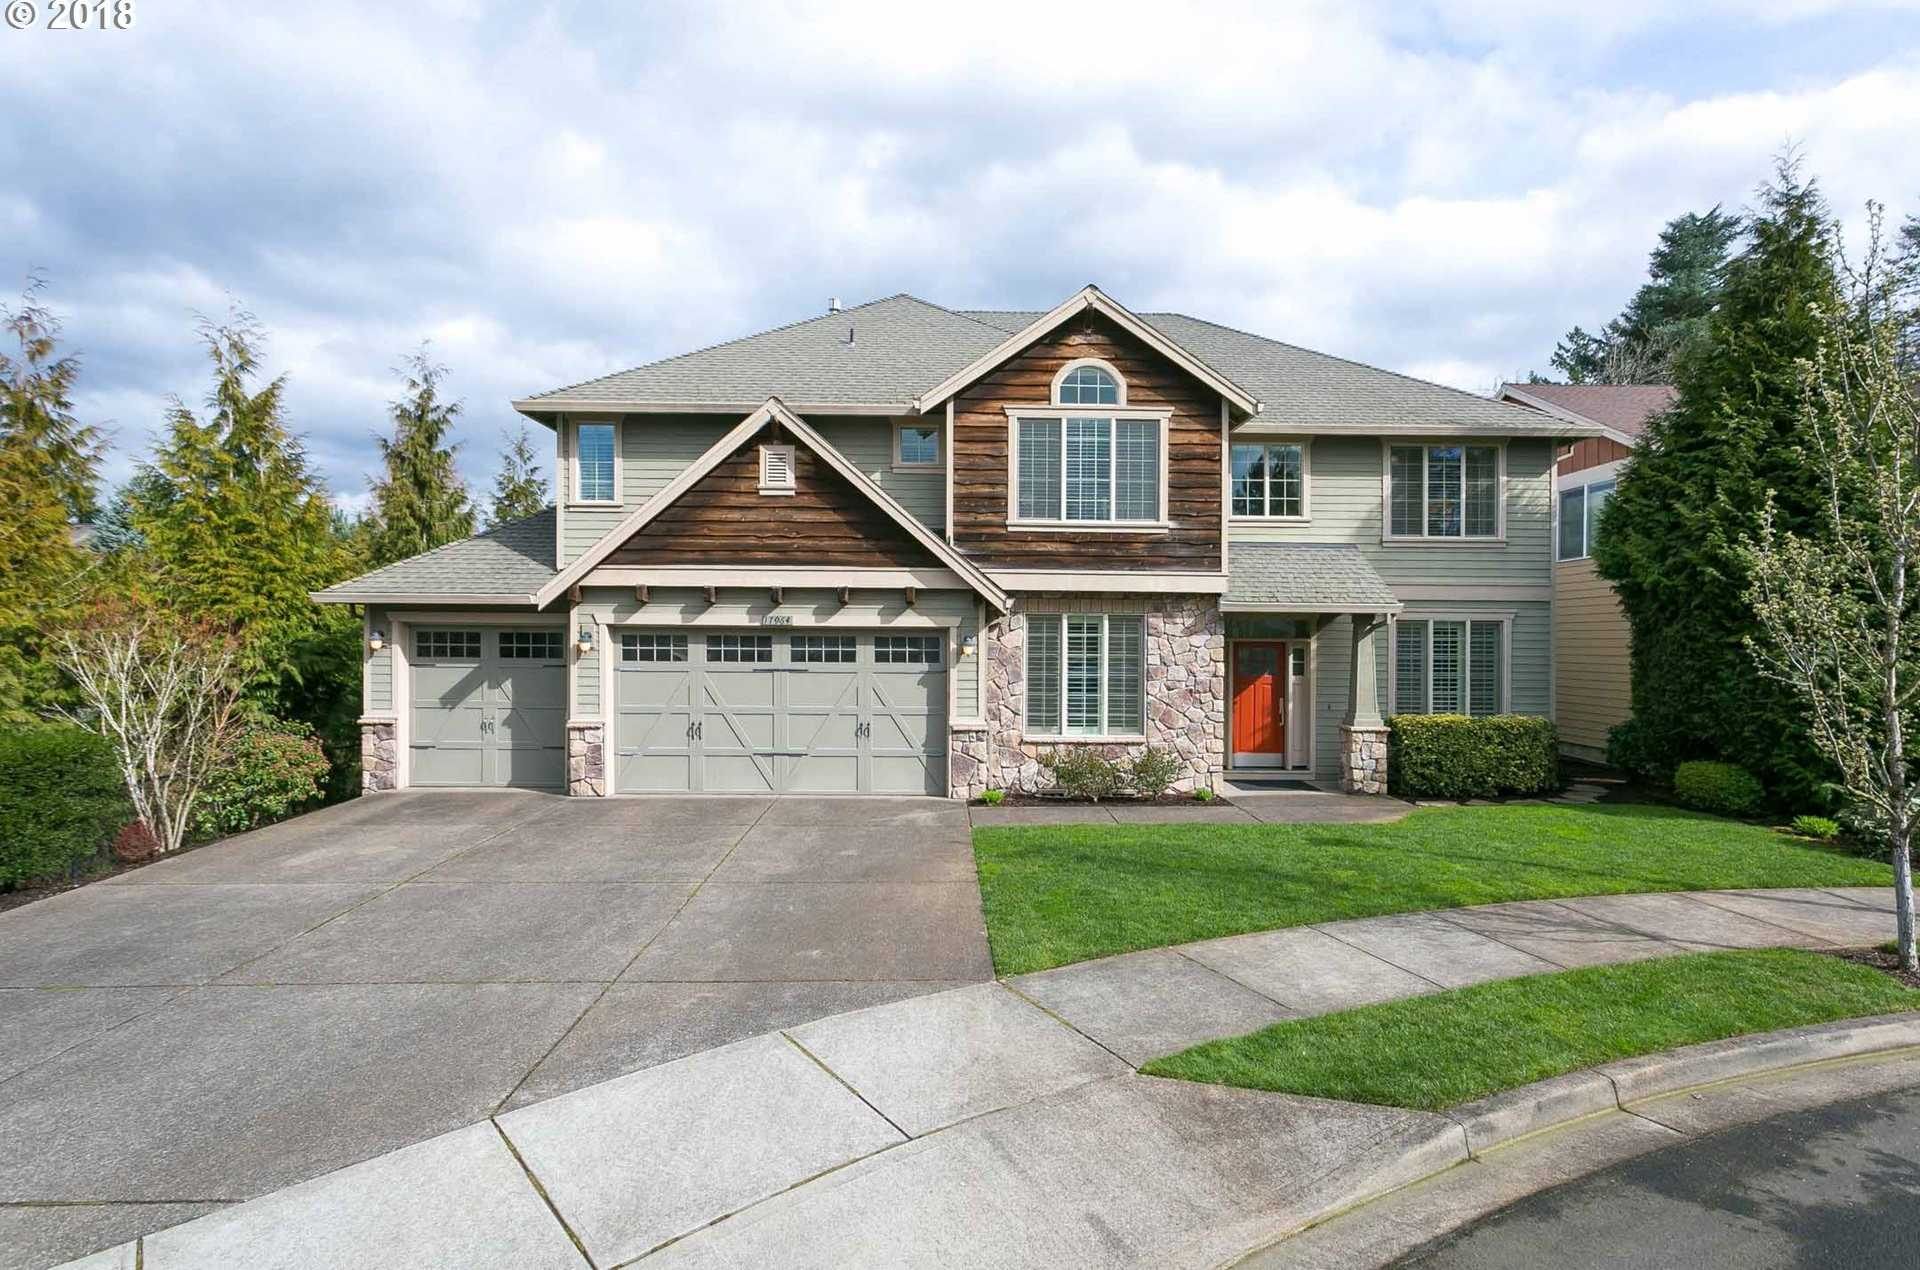 $725,000 - 4Br/3Ba -  for Sale in River Park, Tualatin